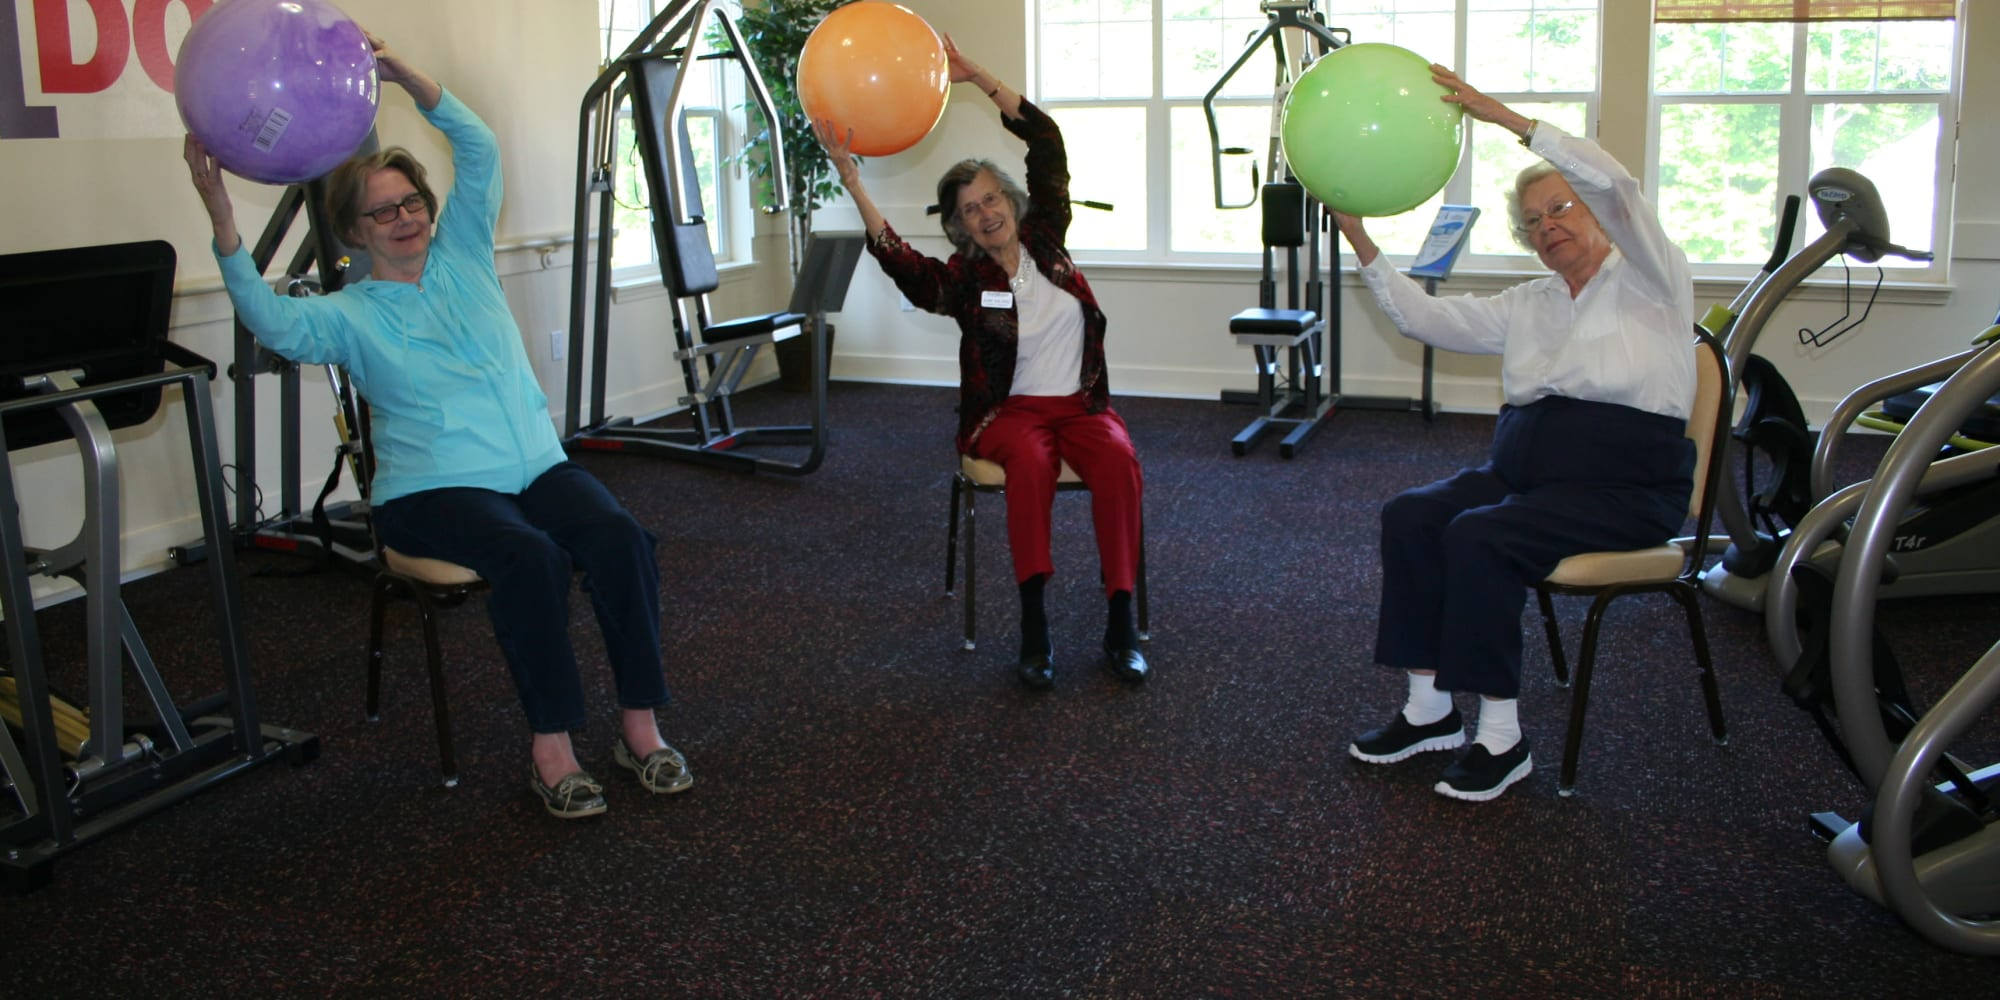 Residents exercising at Northridge Gracious Retirement Living in Fishers, Indiana